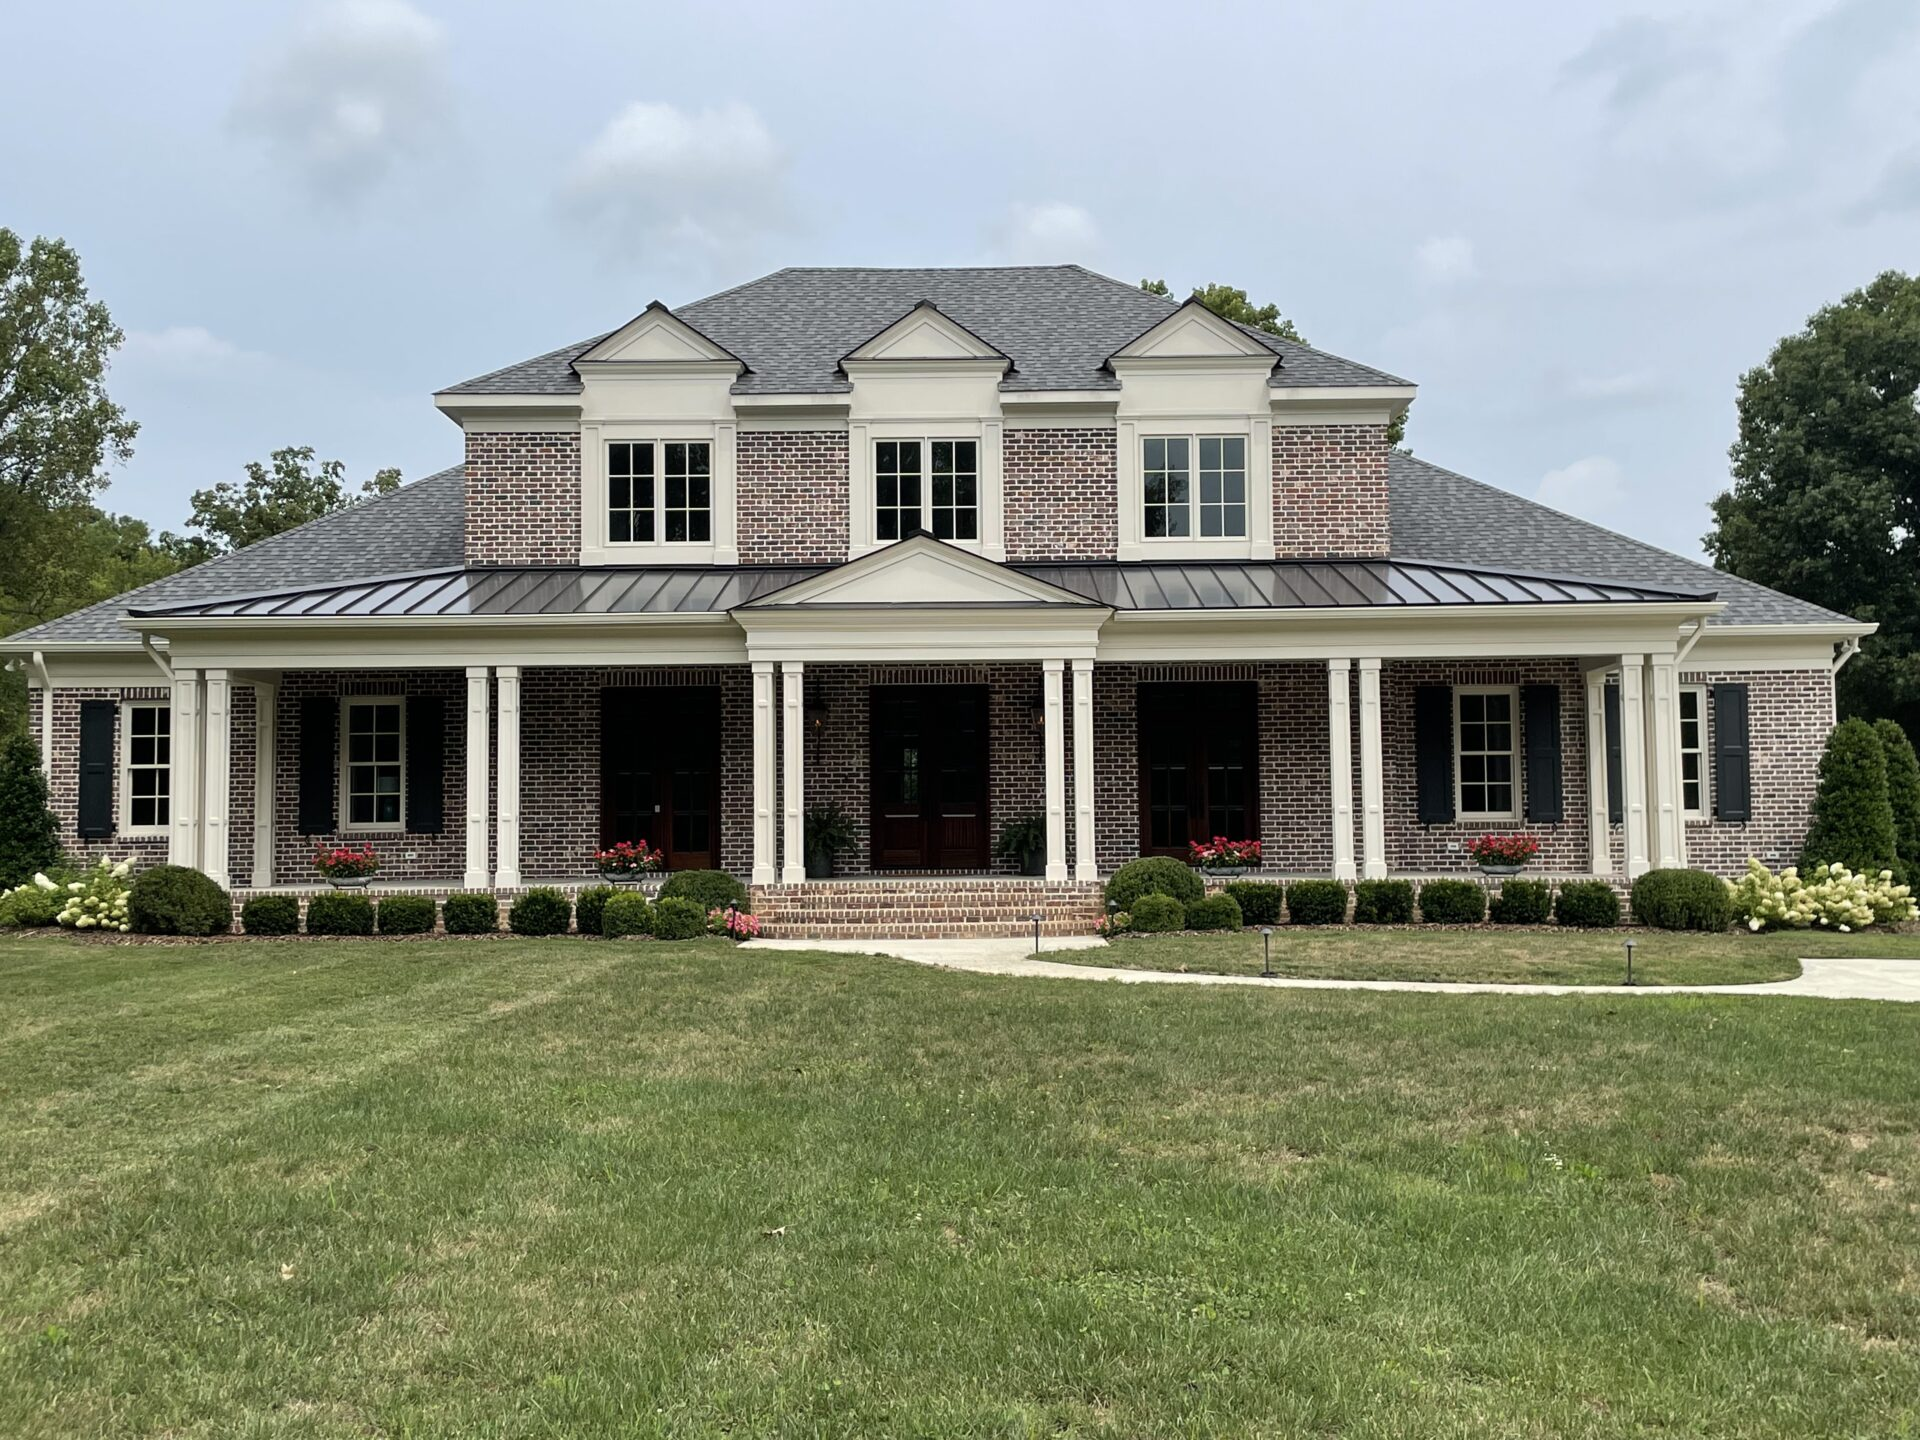 Modern Nashville Custom Built home from Nashville Home Builders who also build homes in Franklin and Brentwood TN